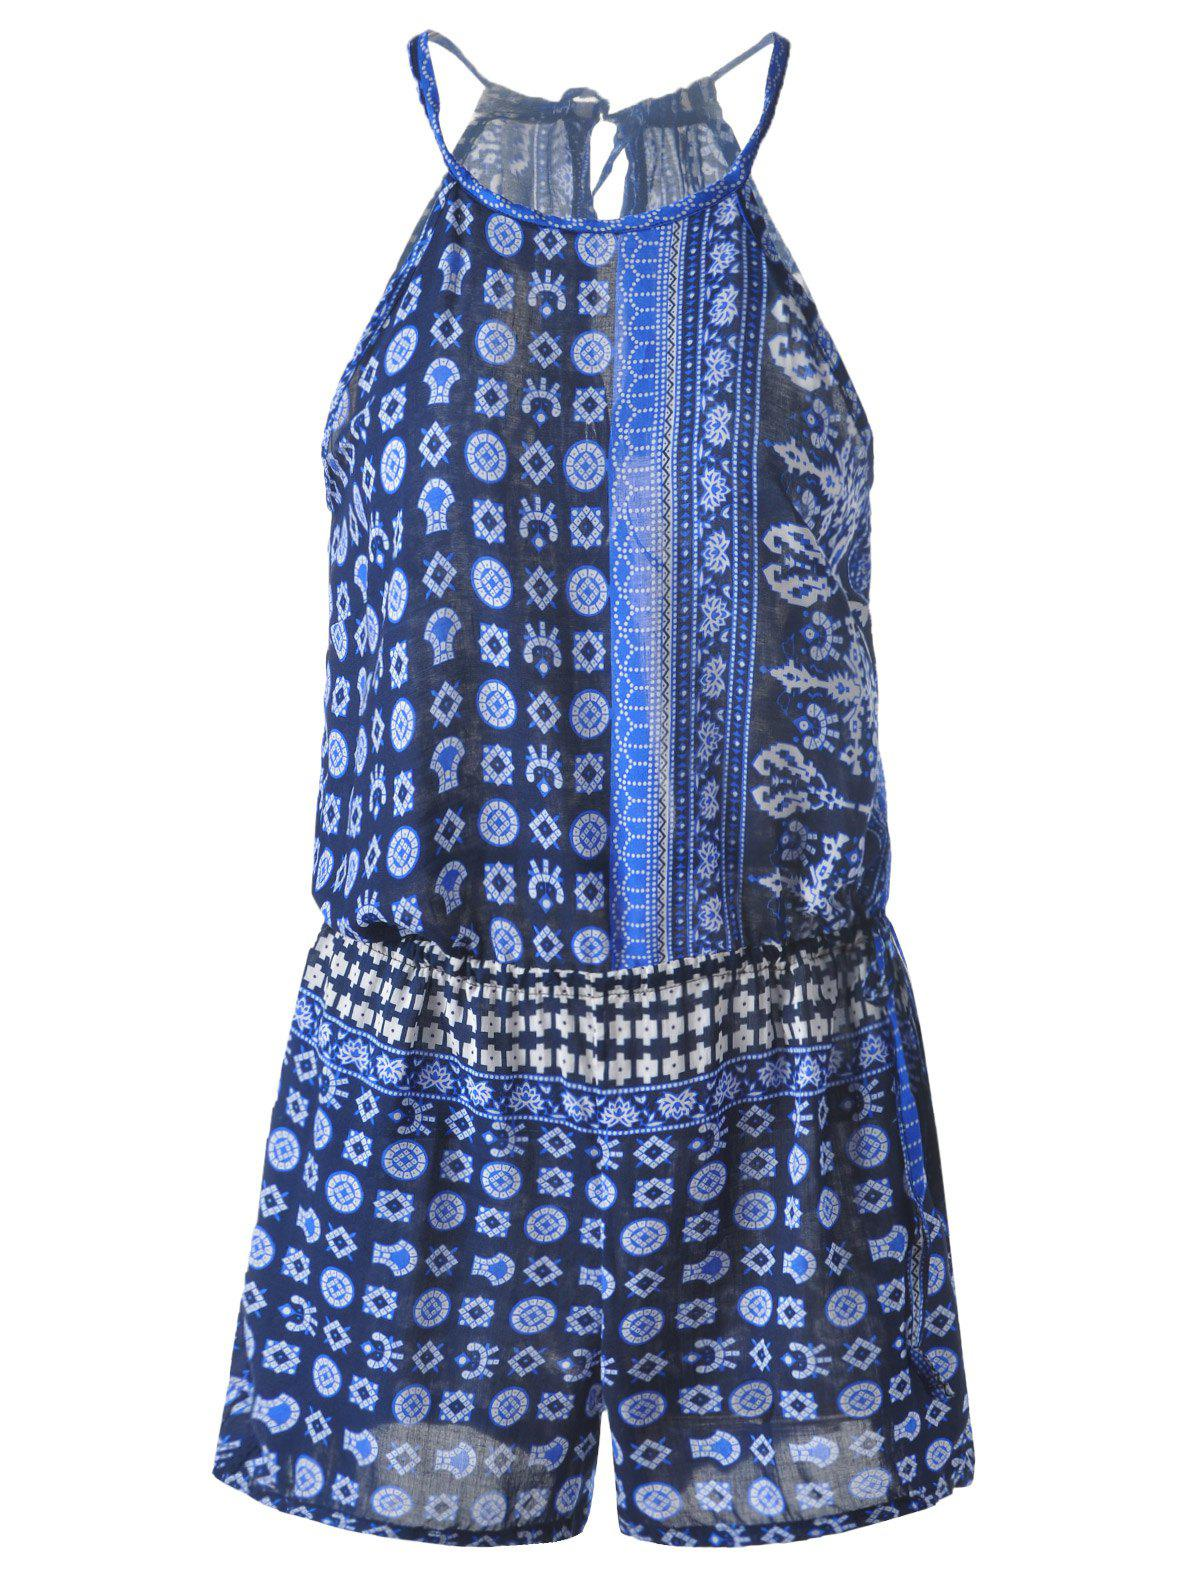 Bohemian Lace-Up Abstract Printing Drawstring Backless Romper For Women - PEACOCK BLUE ONE SIZE(FIT SIZE XS TO M)